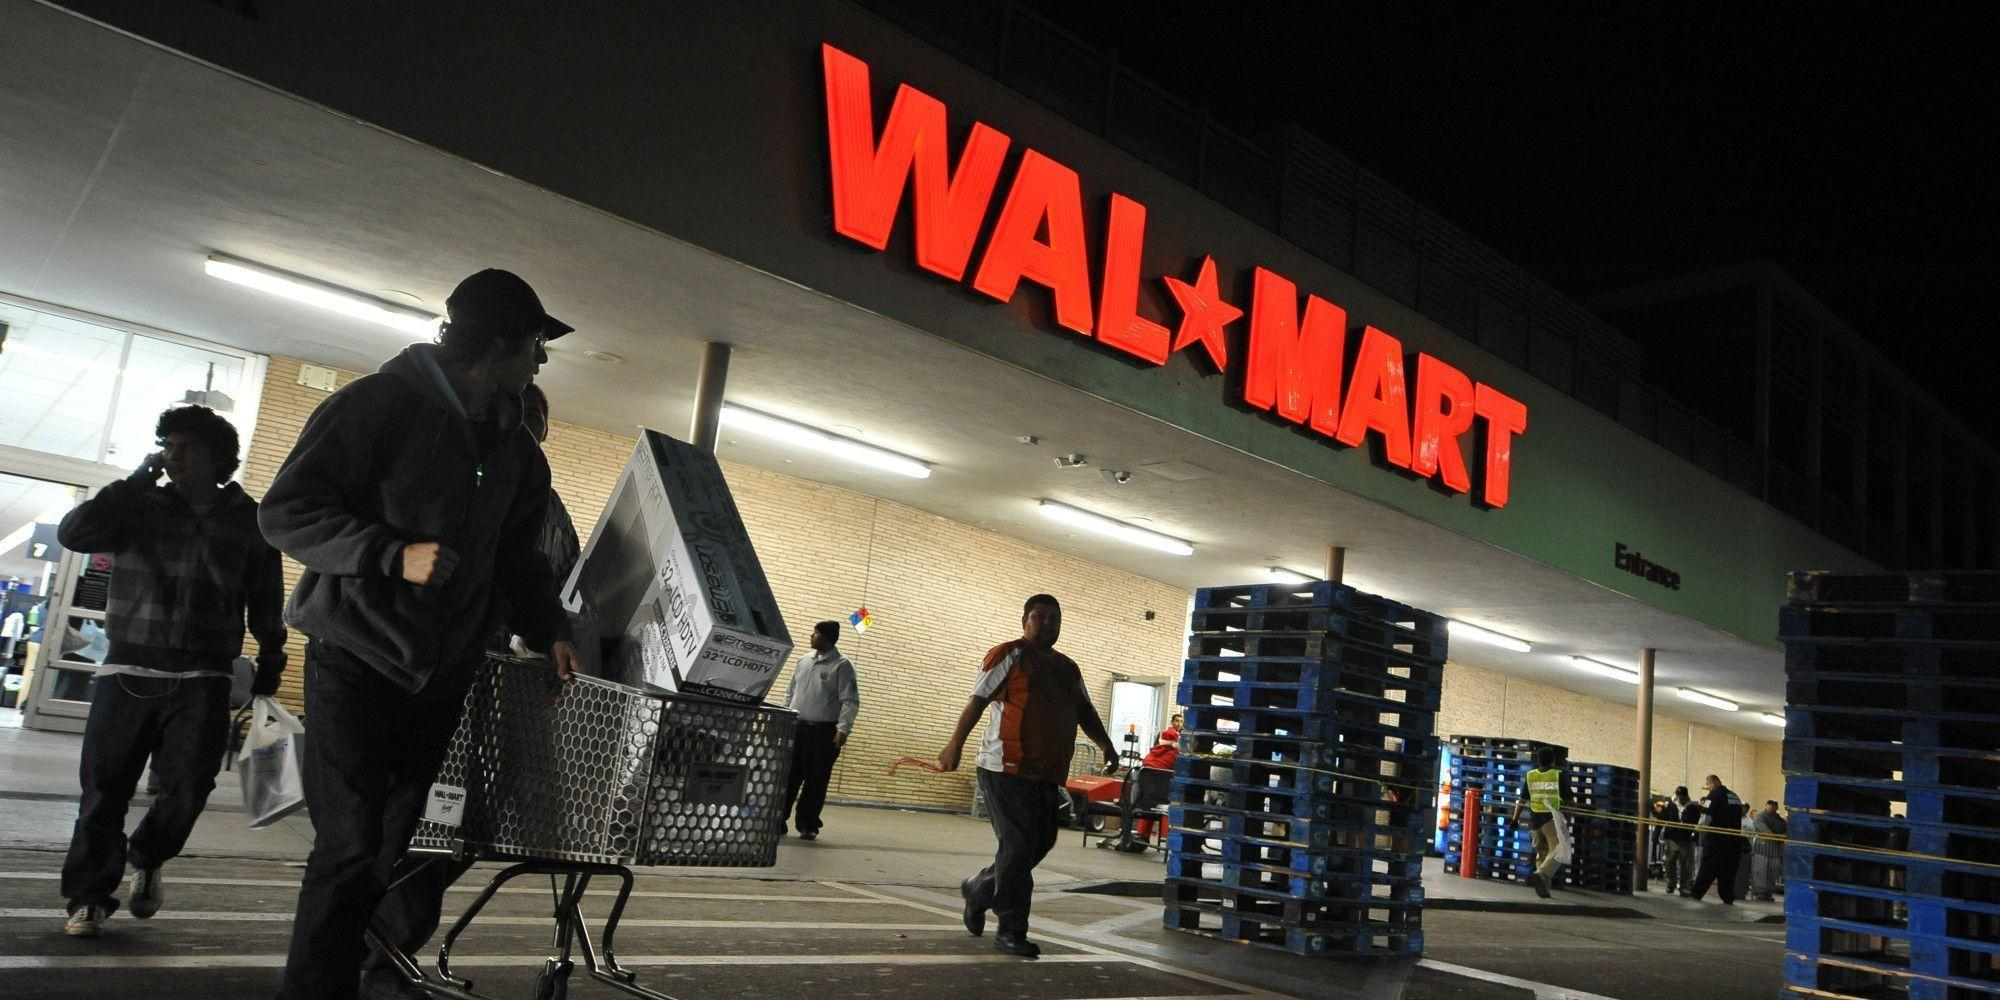 walmat Walmart was founded in 1962 by sam walton he opened the first walmart on july 2nd, 1962 walmart's business model was not expected to work out and was frowned upon by retail experts.